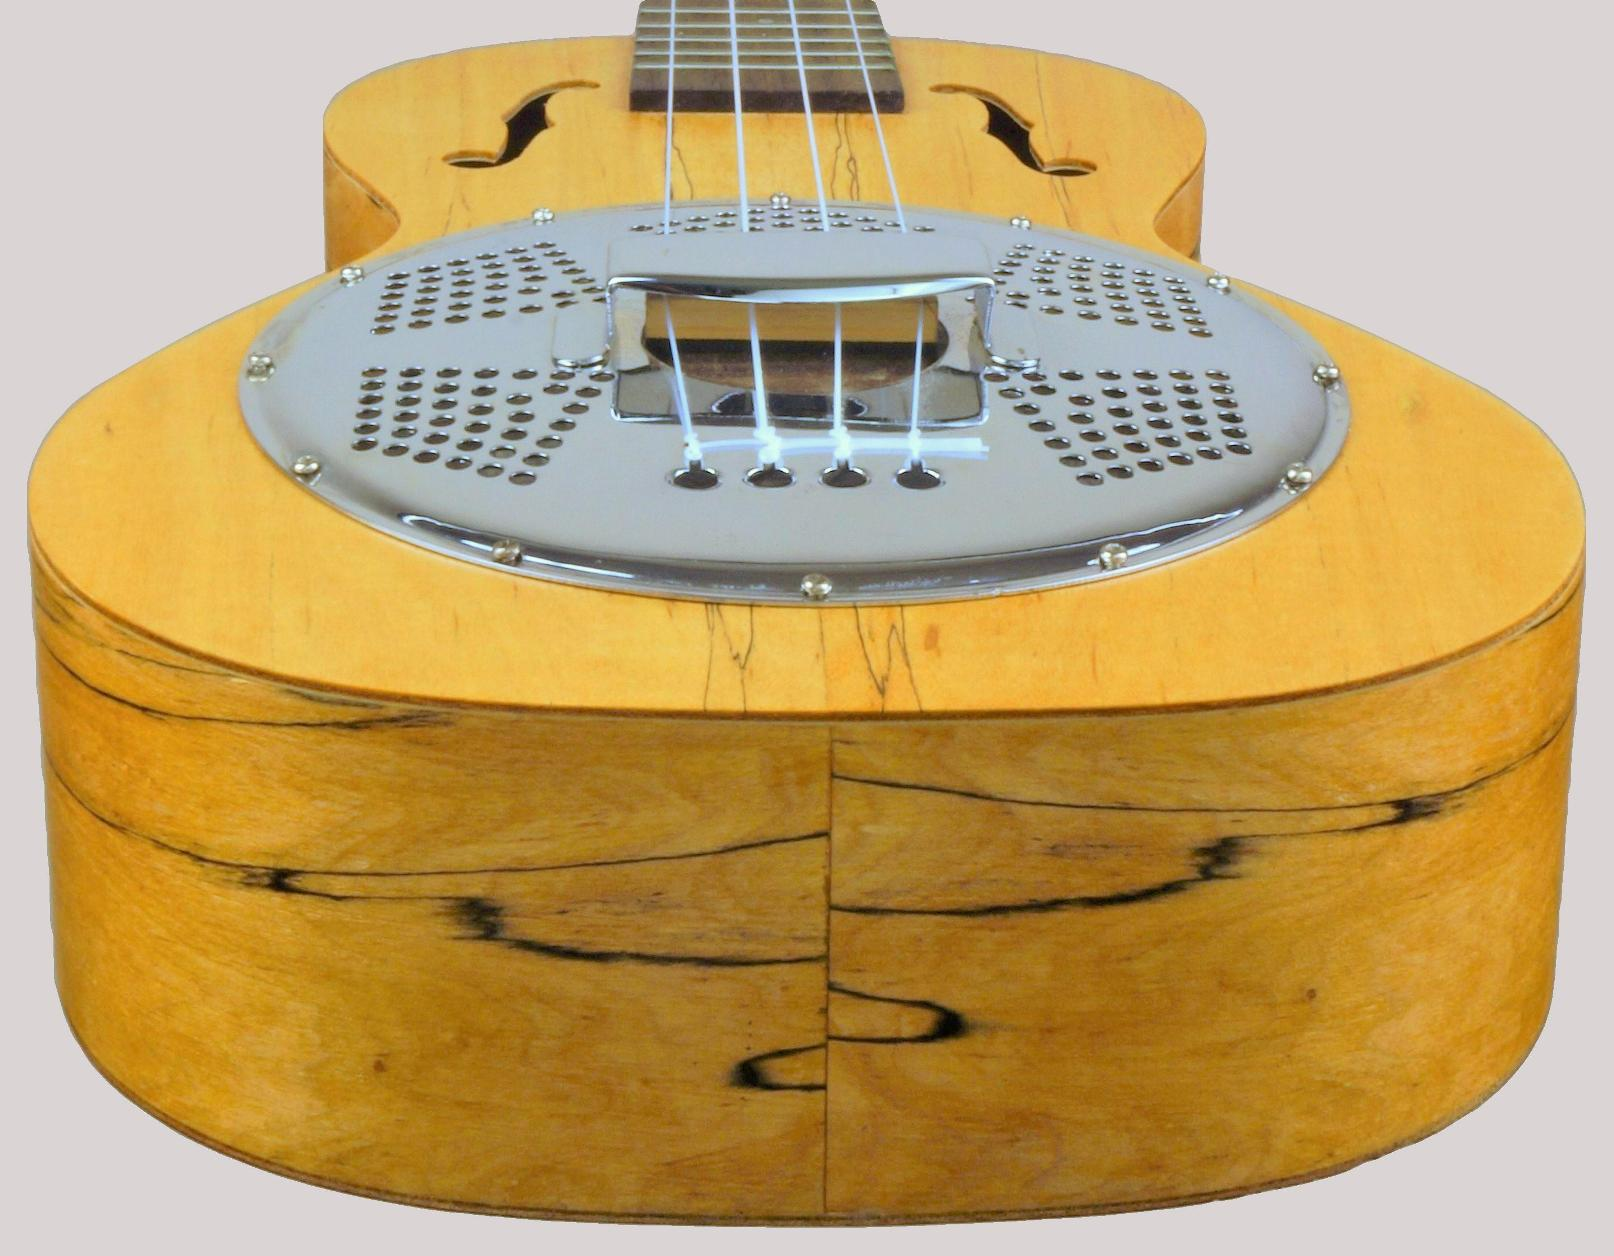 Thomann resonator tenor ukulele